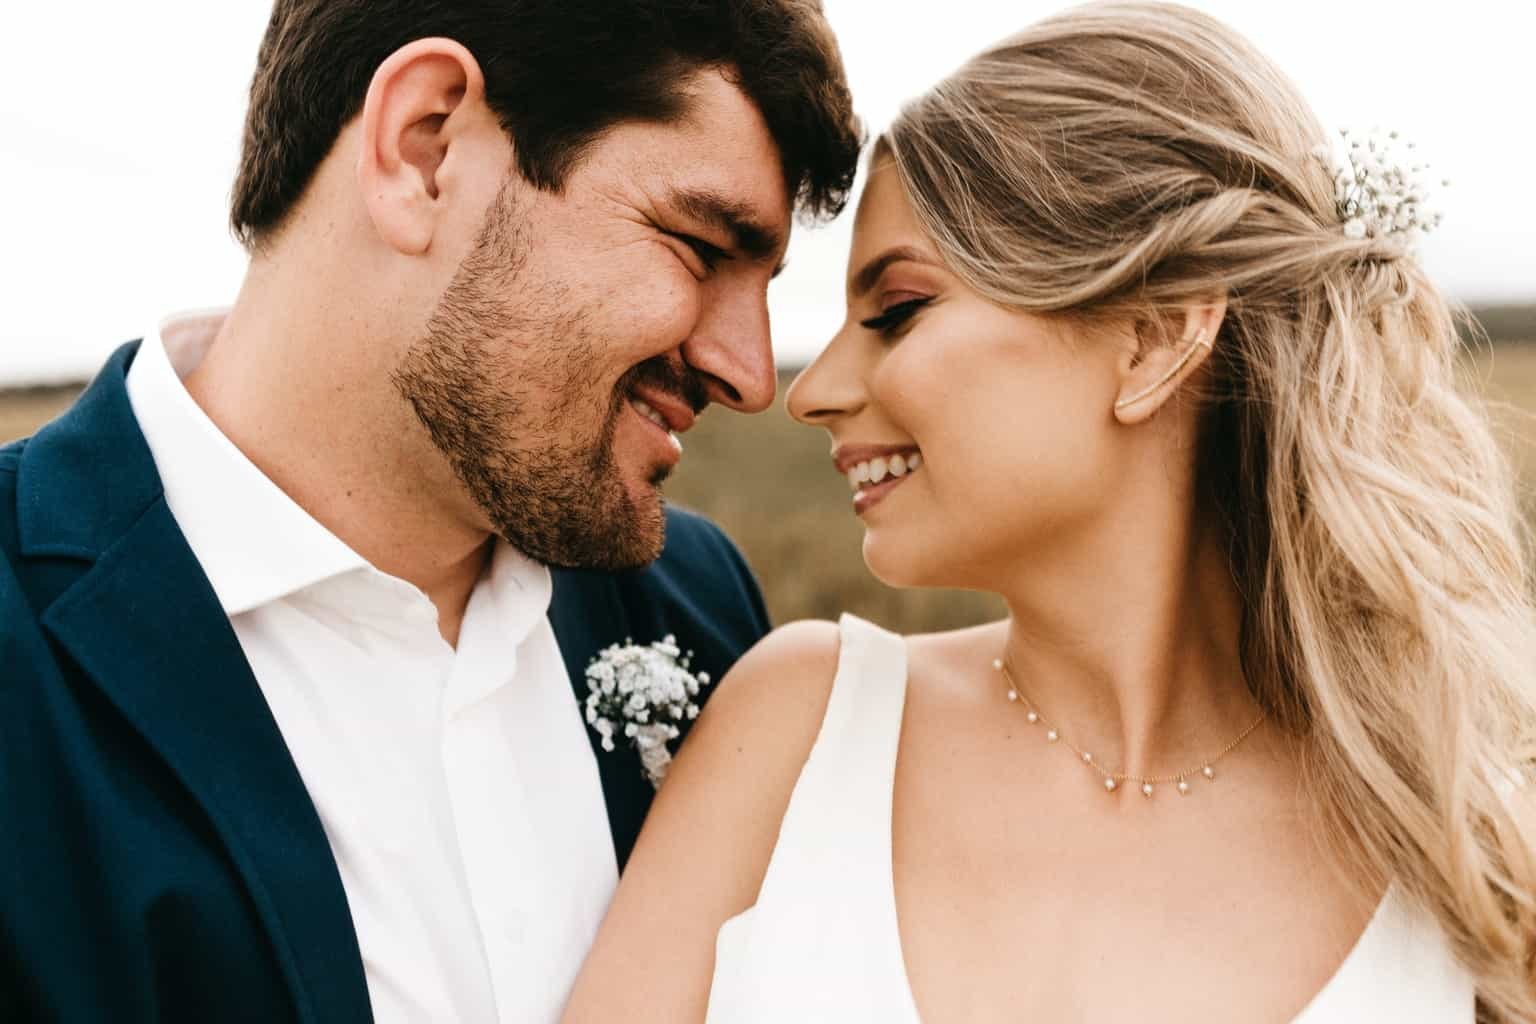 Man and Woman Facing Each Other While Smiling during Day